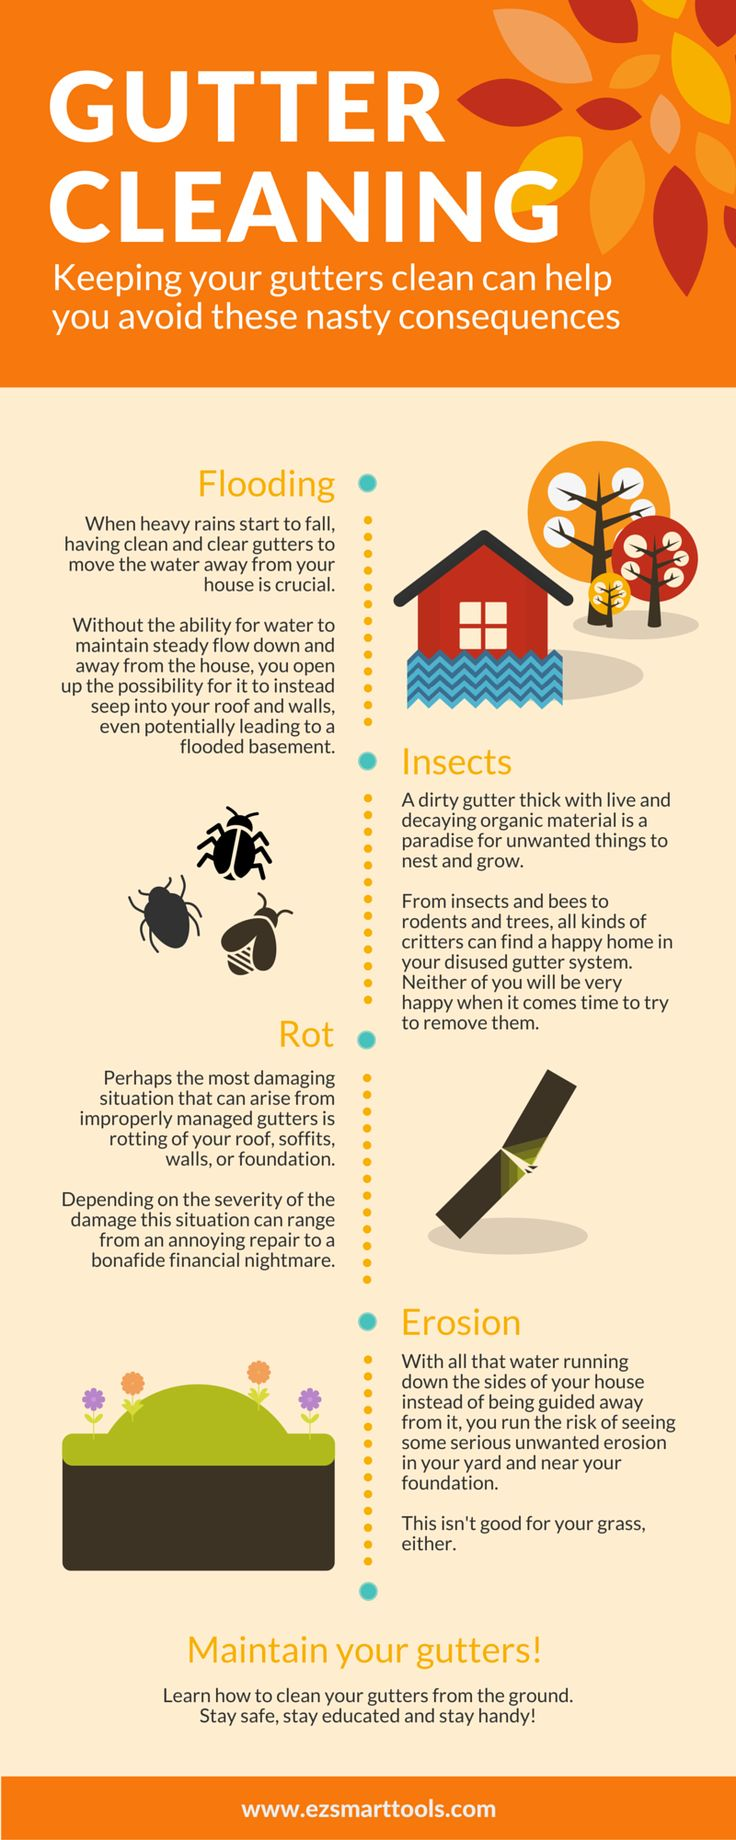 Here are just a few reasons it's so important to keep your gutters clean, as well as the consequences you could have to deal with if you decide not to. #DIY #Gutter #Cleaning #Home #Improvement #Infographic #EZsmart